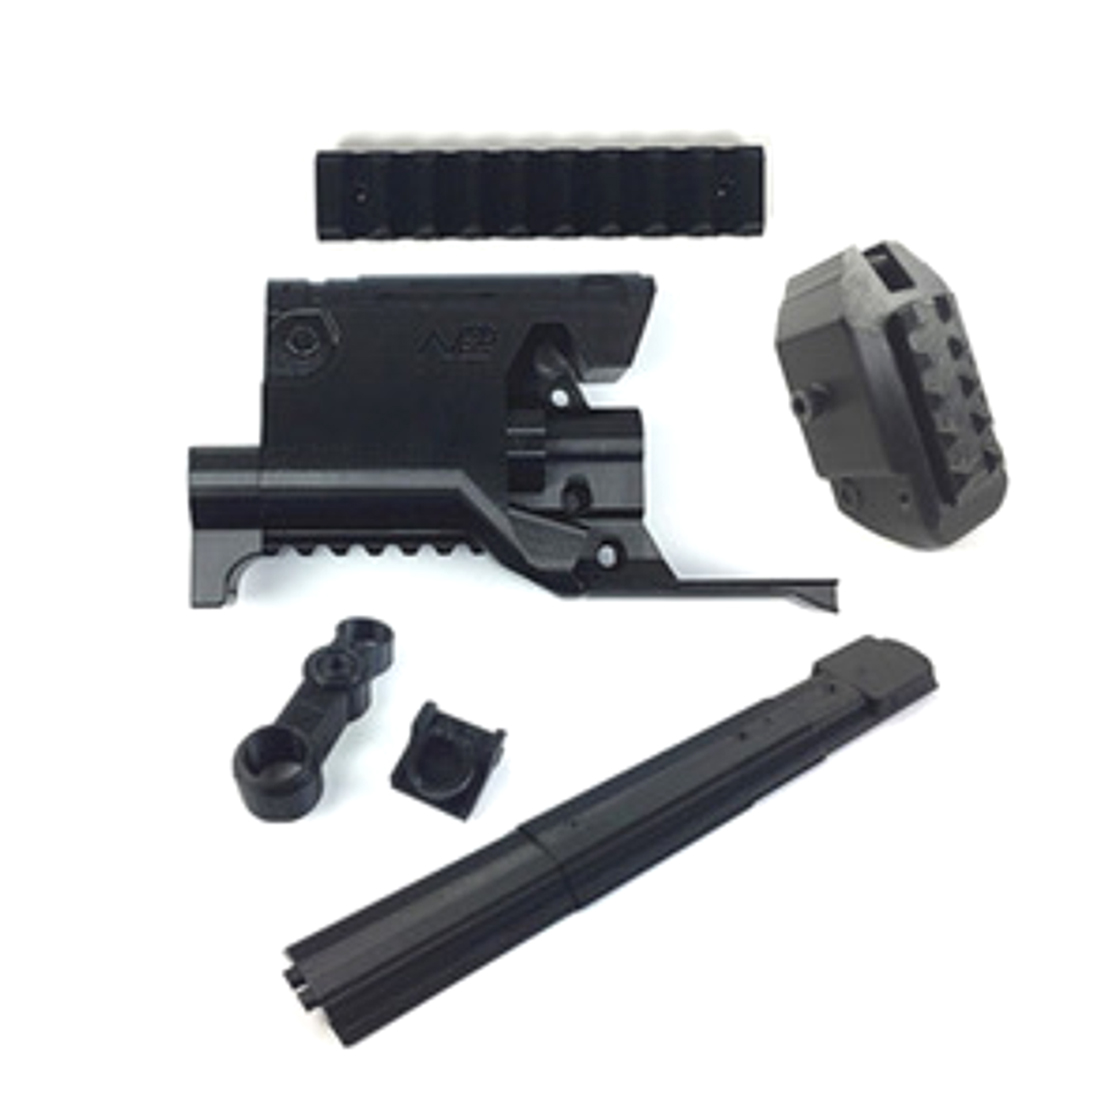 3D Printing Type K and Type A Appearence Modified Kit for Nerf A0711 N-Strike Elite Stryfe Blaster - Black worker twill metal power type flywheel set for nerf n strike elite stryfe blaster nerf n strike elite rapidstrike cs 18 blaster